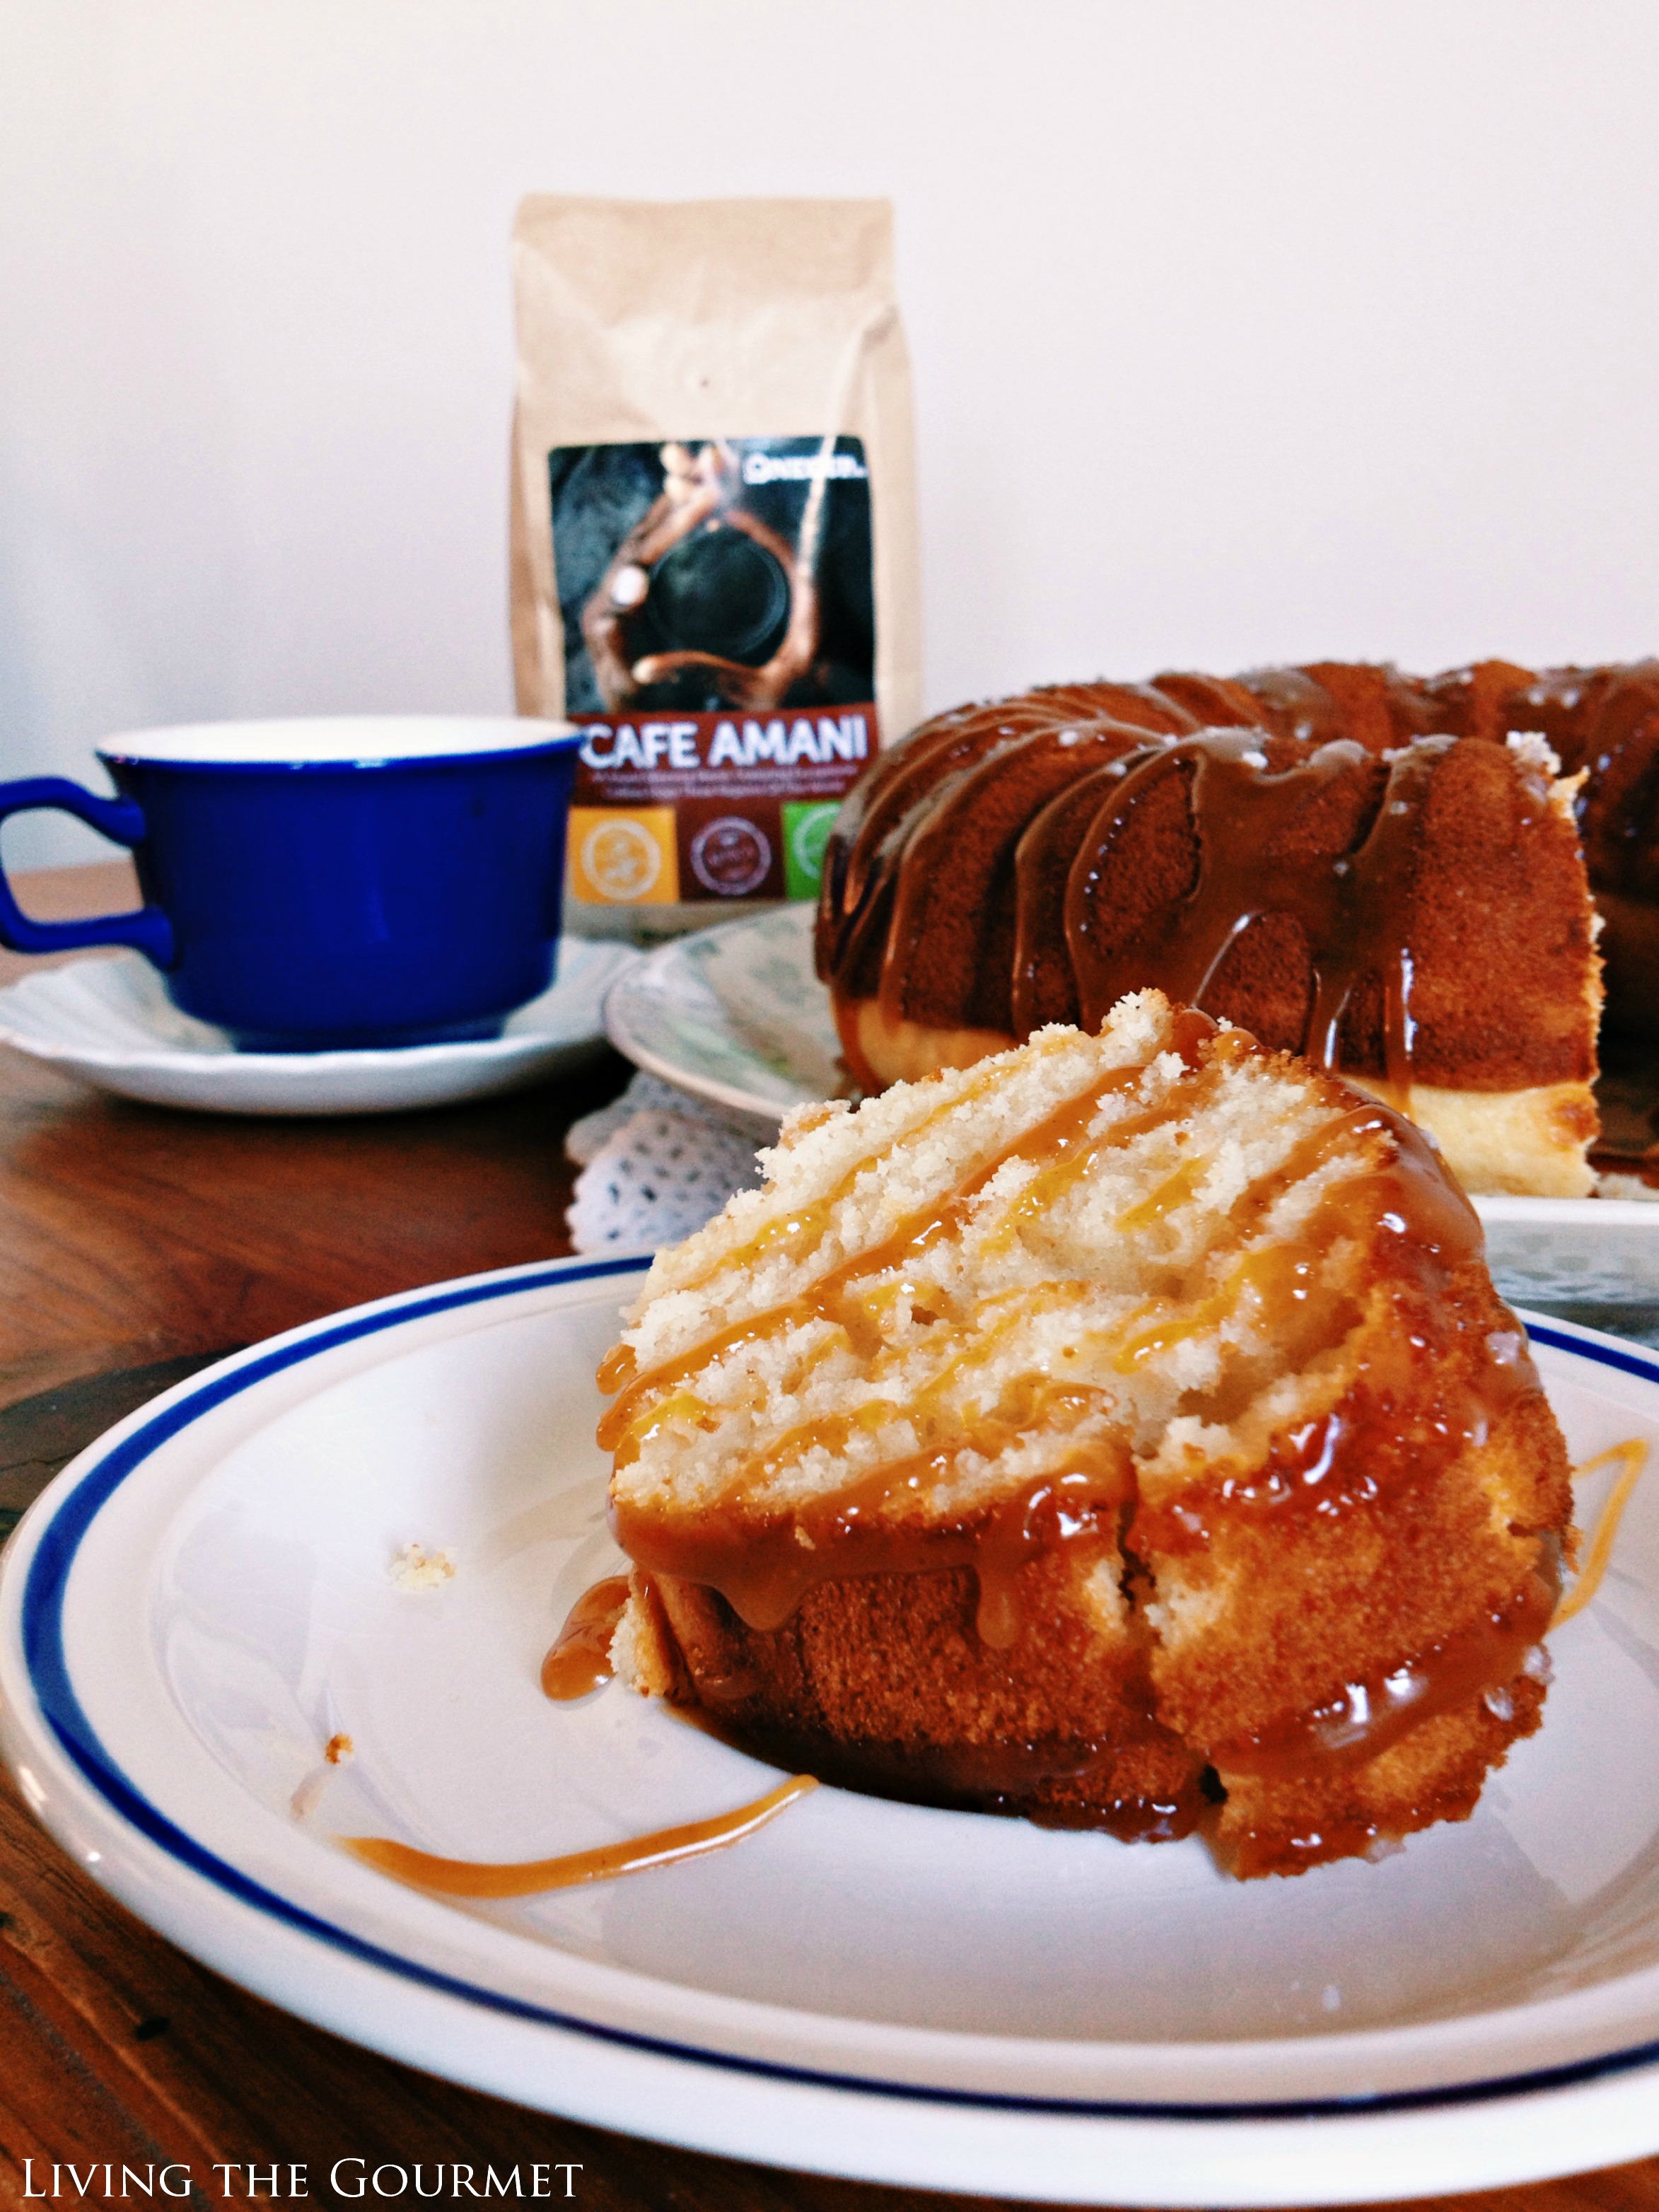 Living the Gourmet: Classic Vanilla Bundt Cake with a Salted Caramel Drizzle